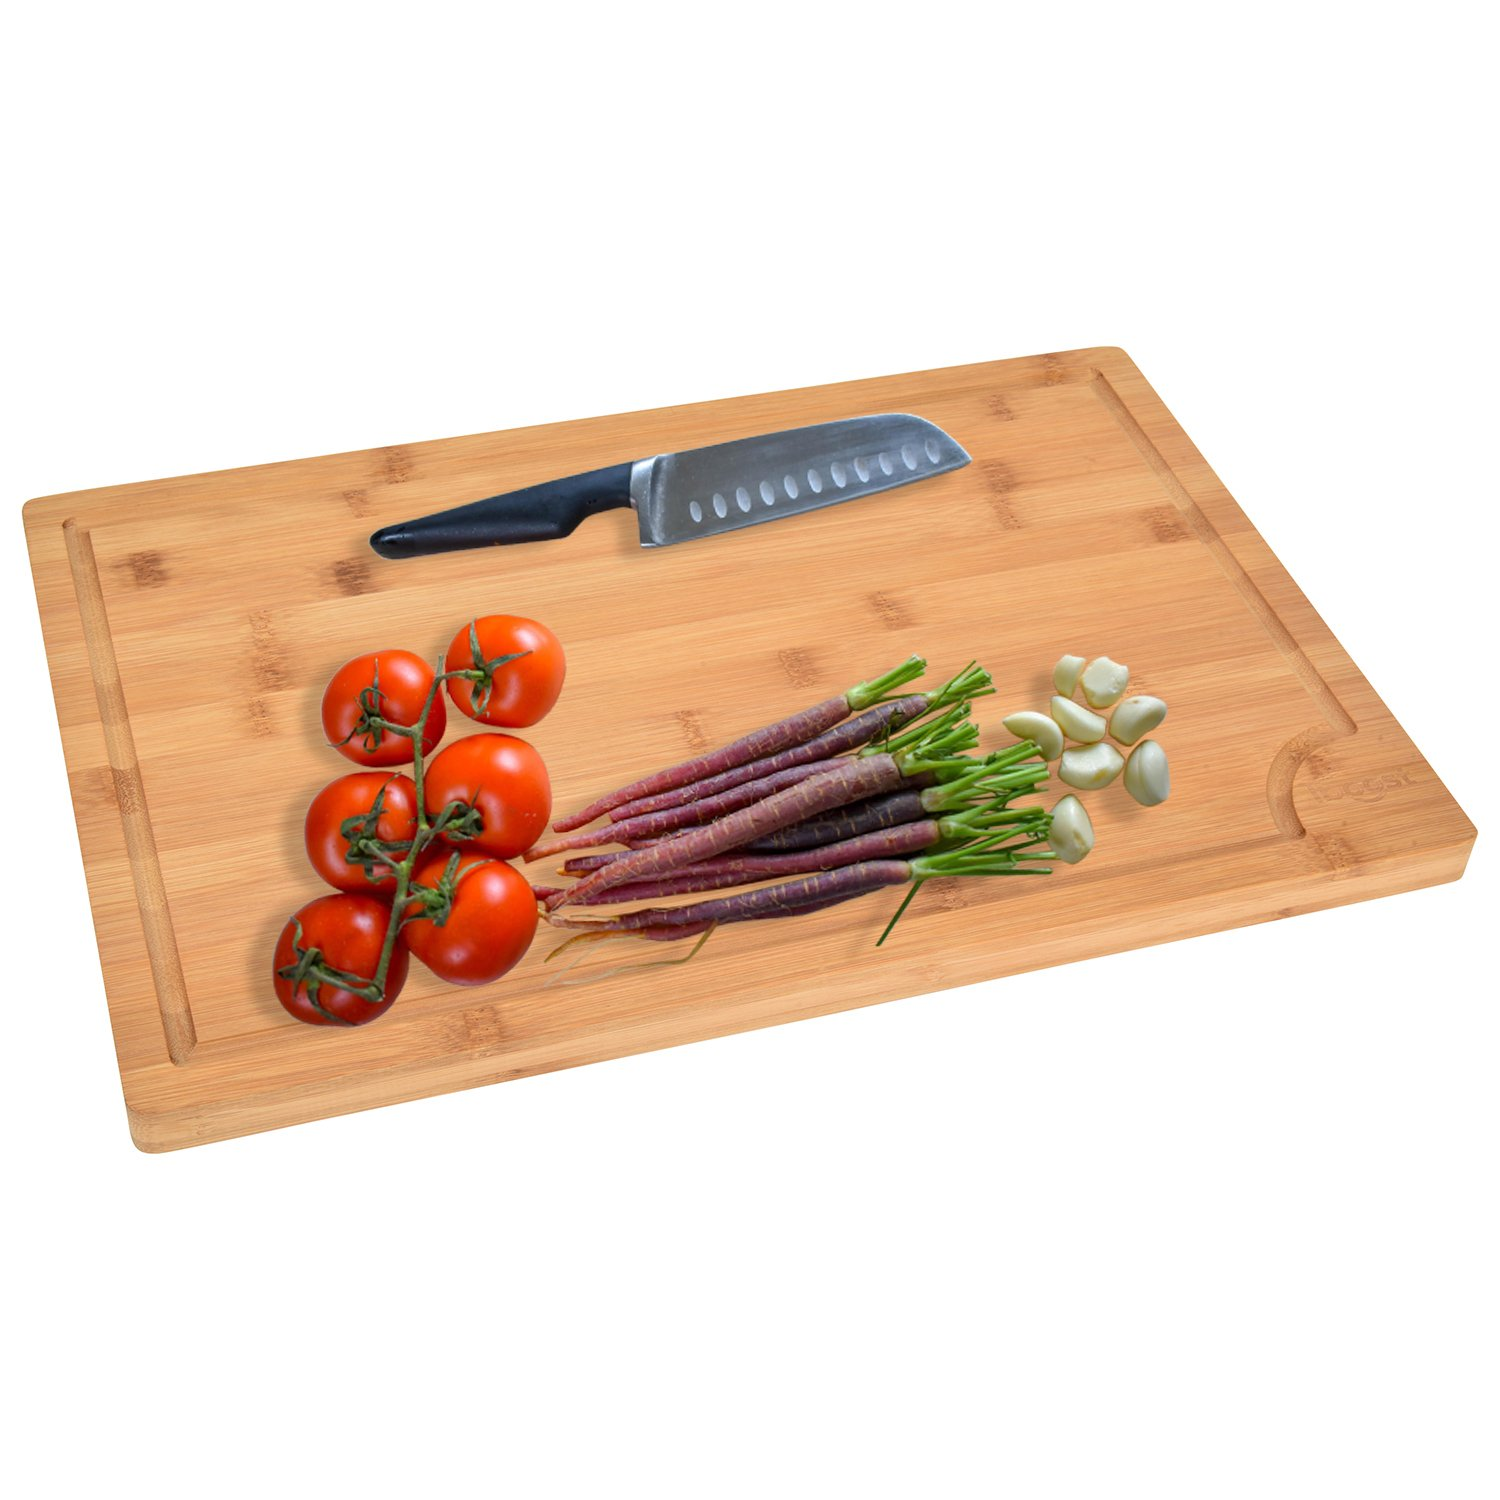 "iBoost EXTRA LARGE Organic Antibacterial 100% Bamboo Natural Professional Grade Extra Large Wood Cutting Board and Serving Tray 18"" x 12""x 3/4"""